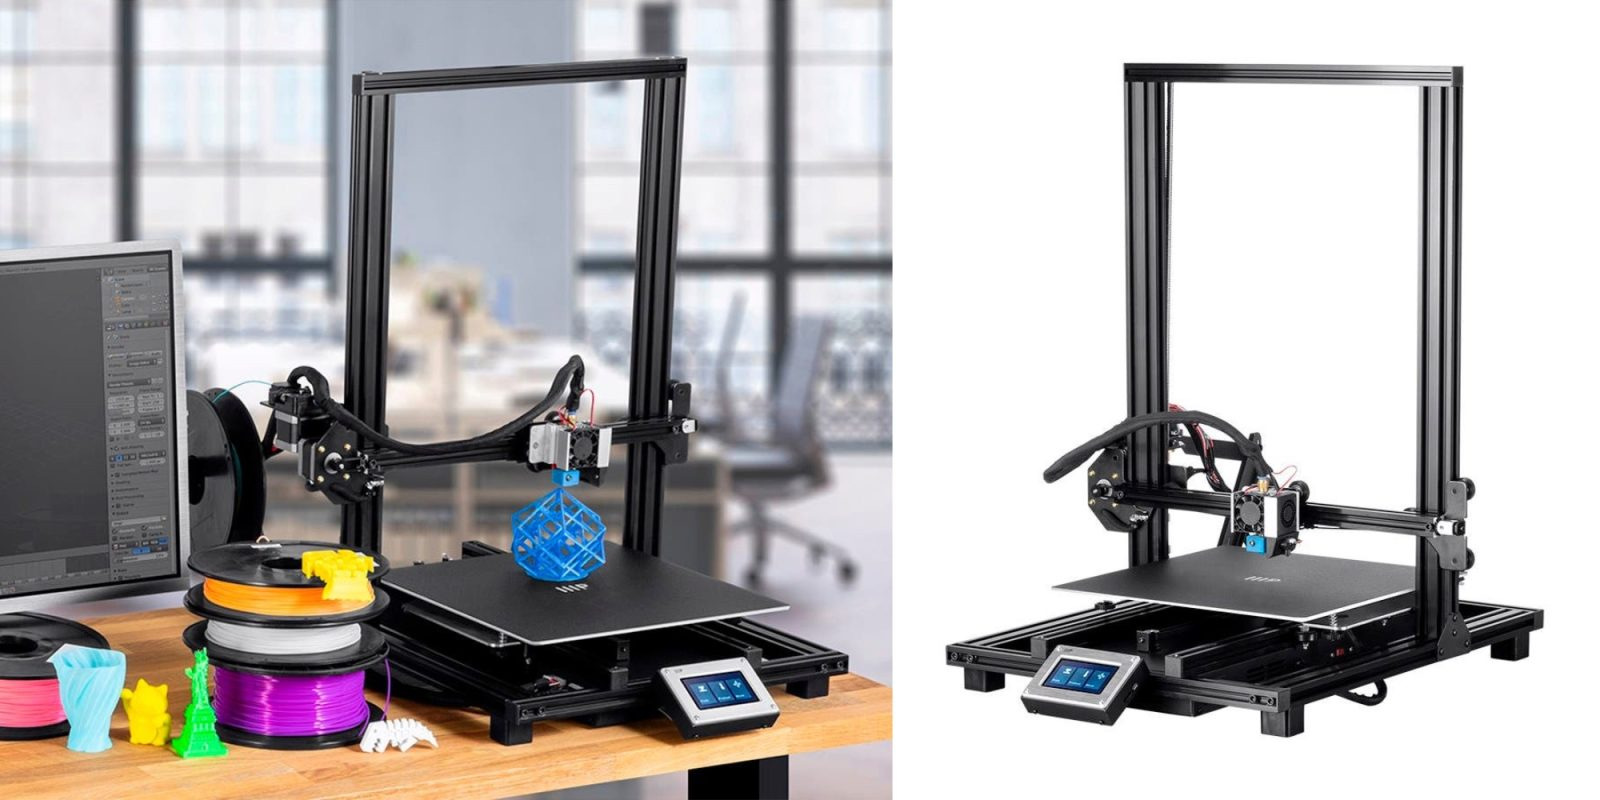 Monoprice's MP10 3D Printer gets first price drop to $340 shipped (Reg. $400)